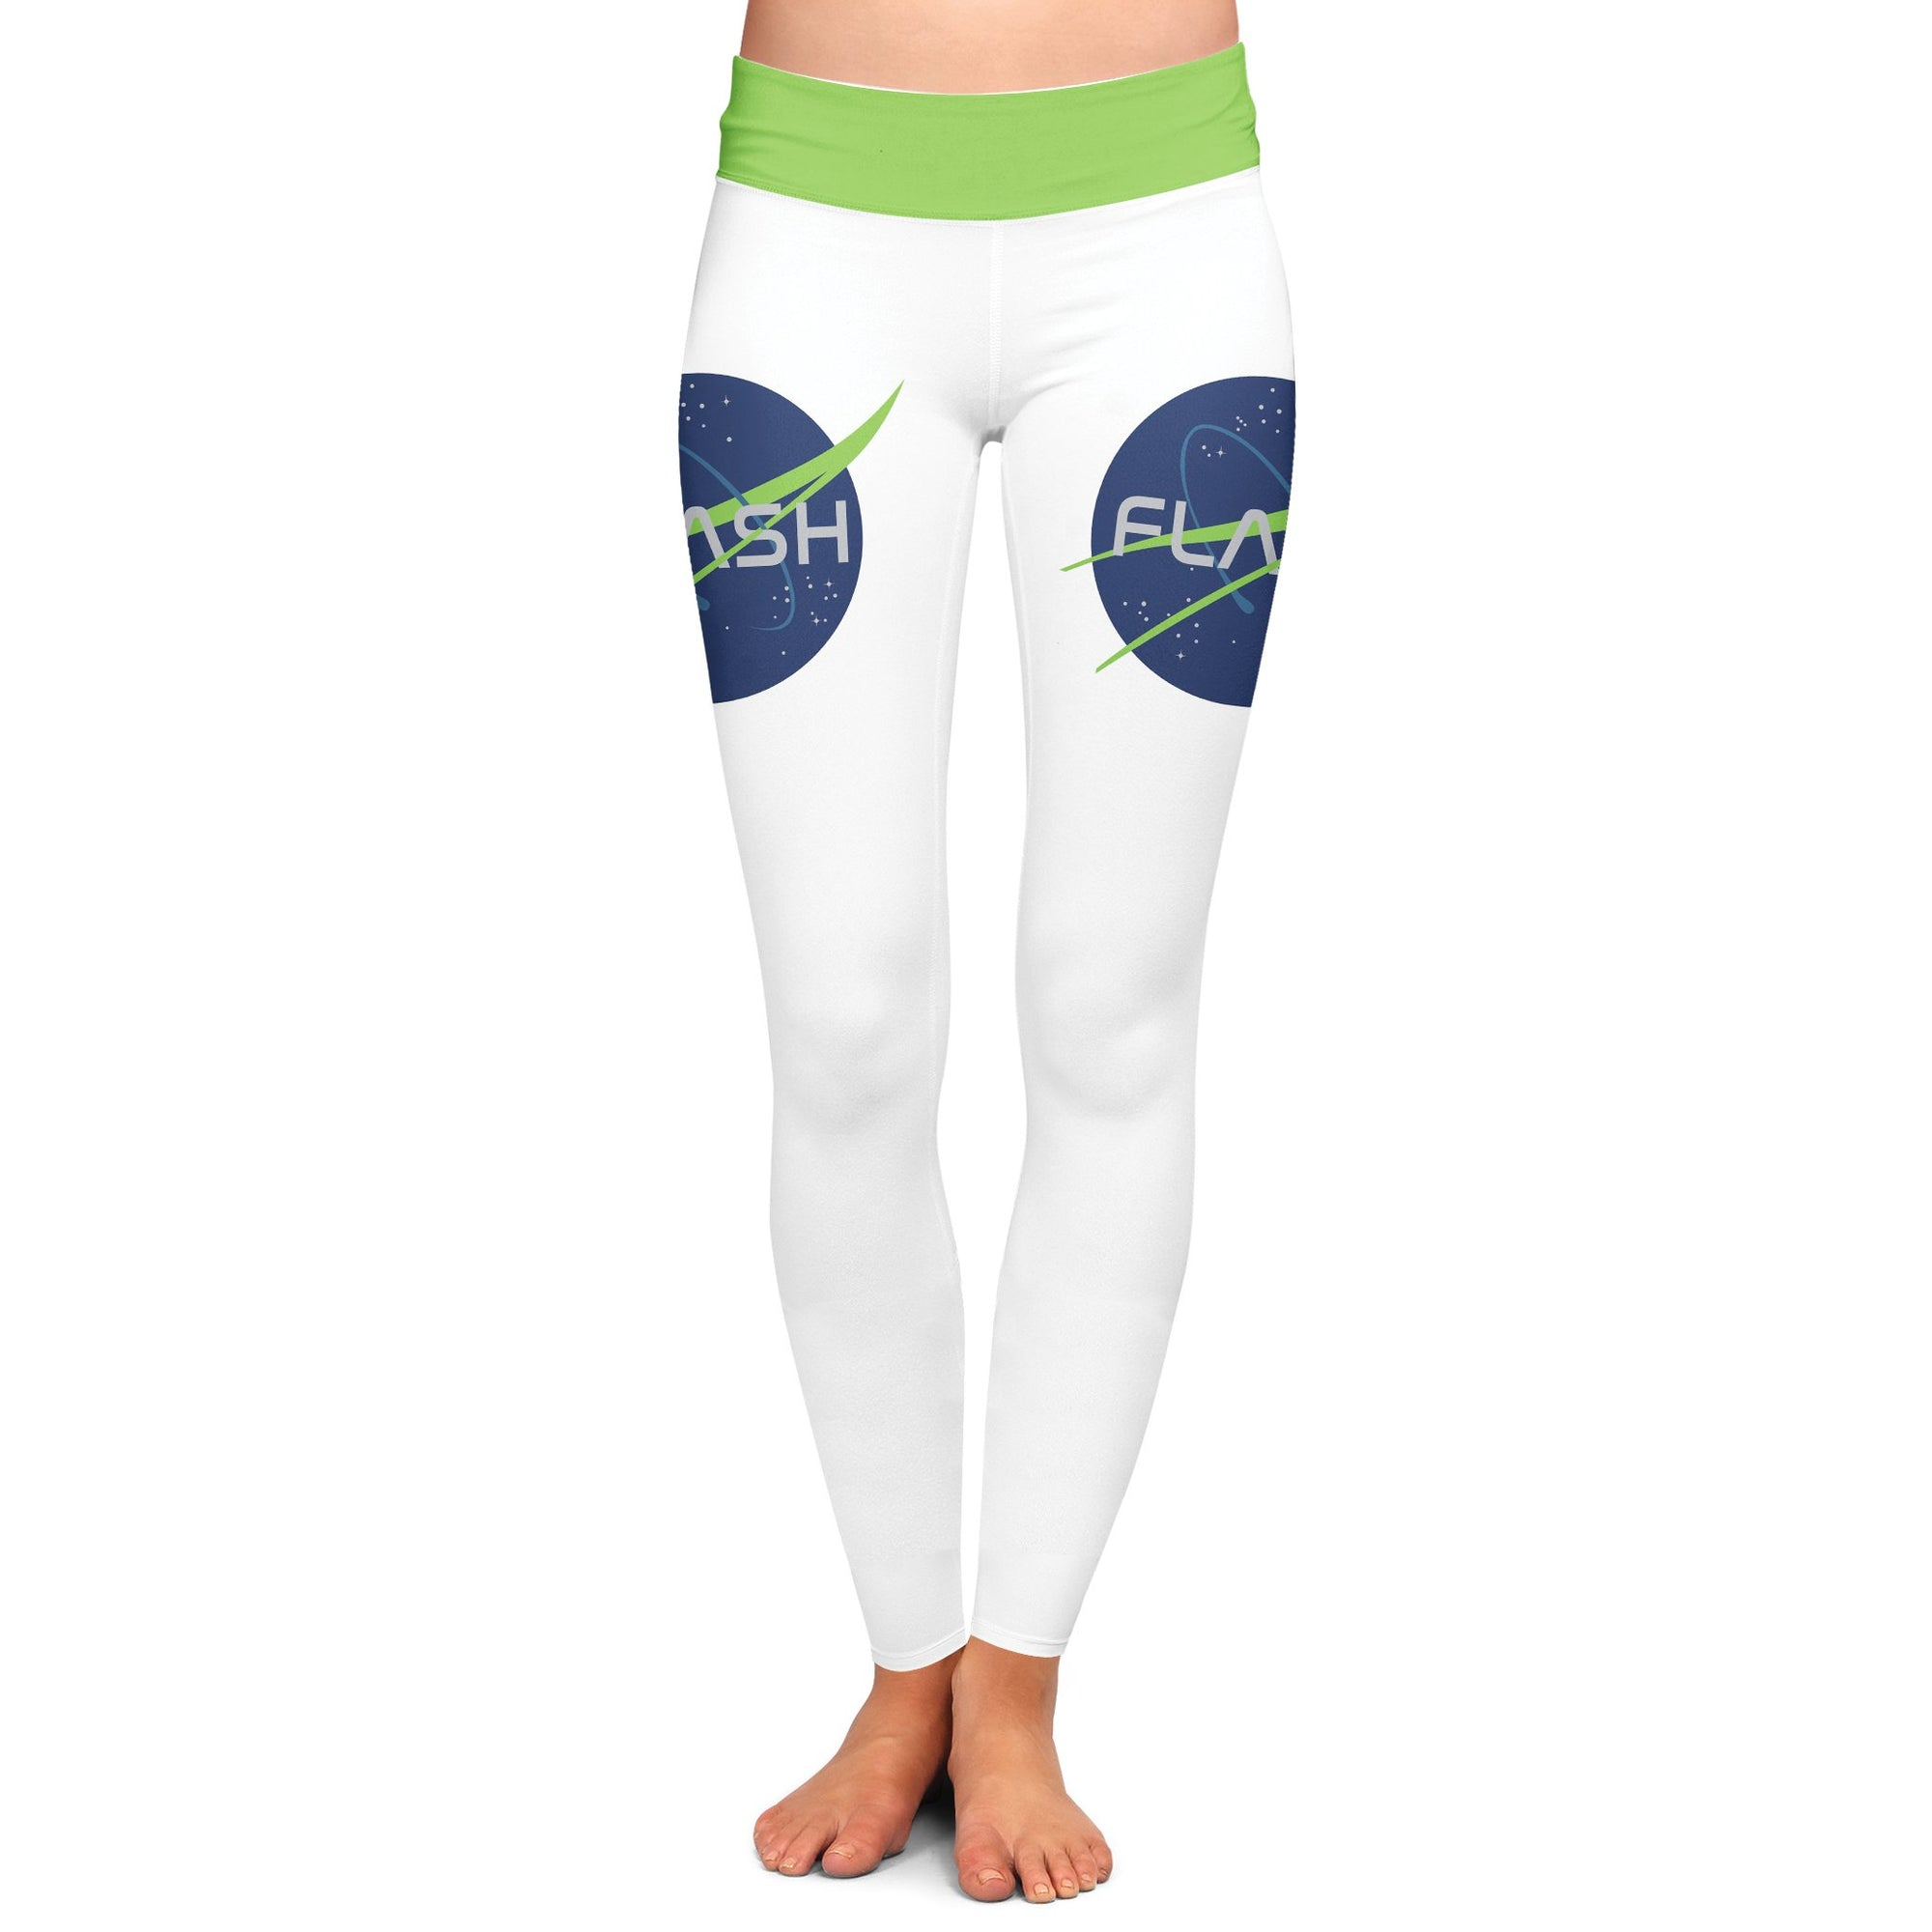 Flash Yoga Pants | flashgordonshop.com